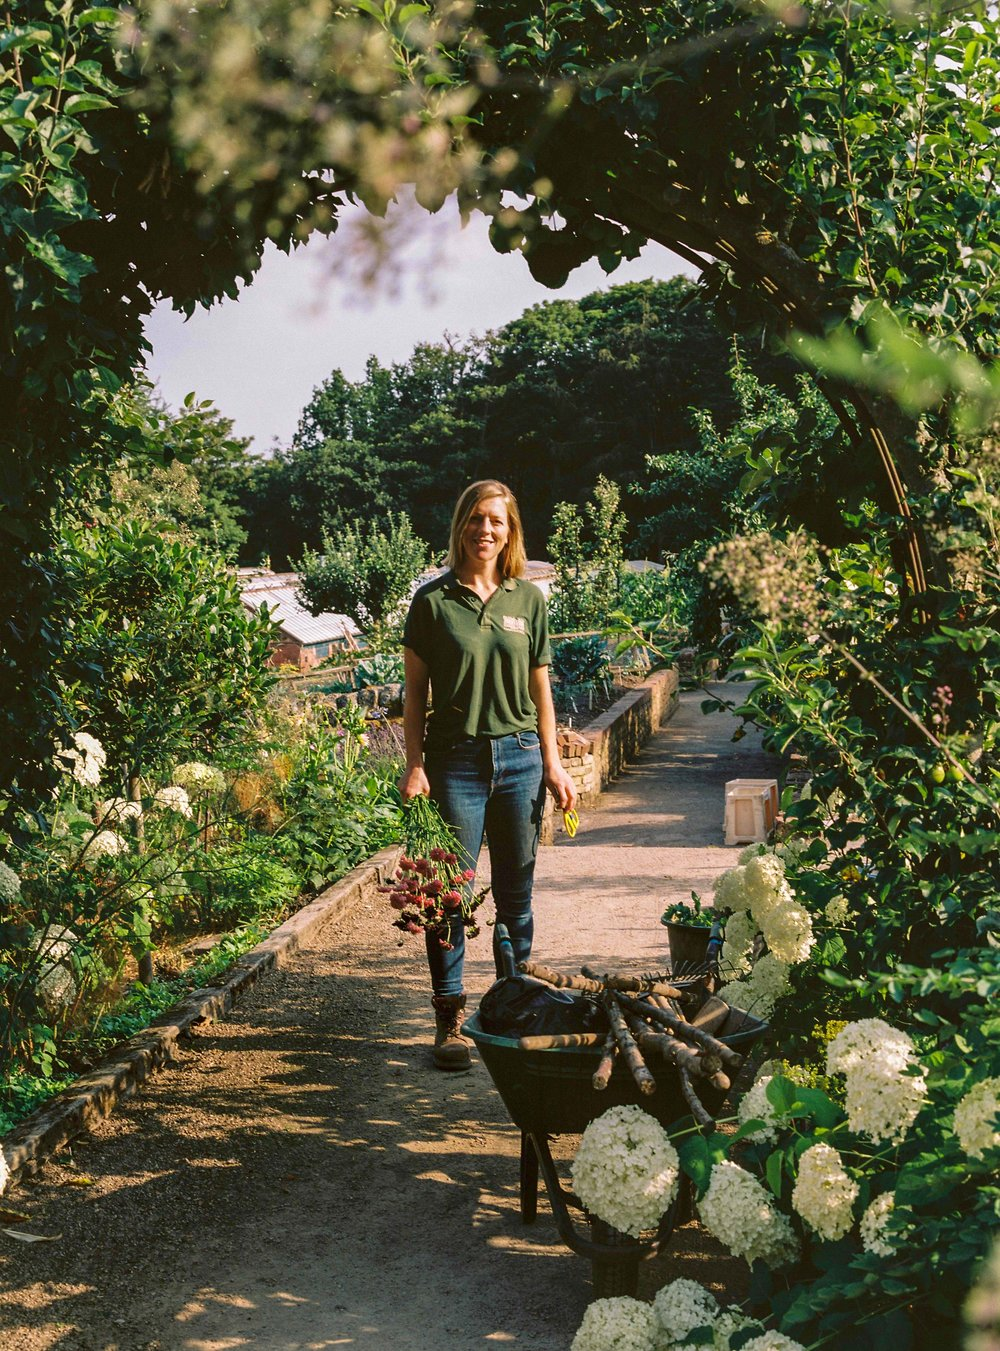 Becky Crowley photographed in the cutting garden at Chatsworth House.